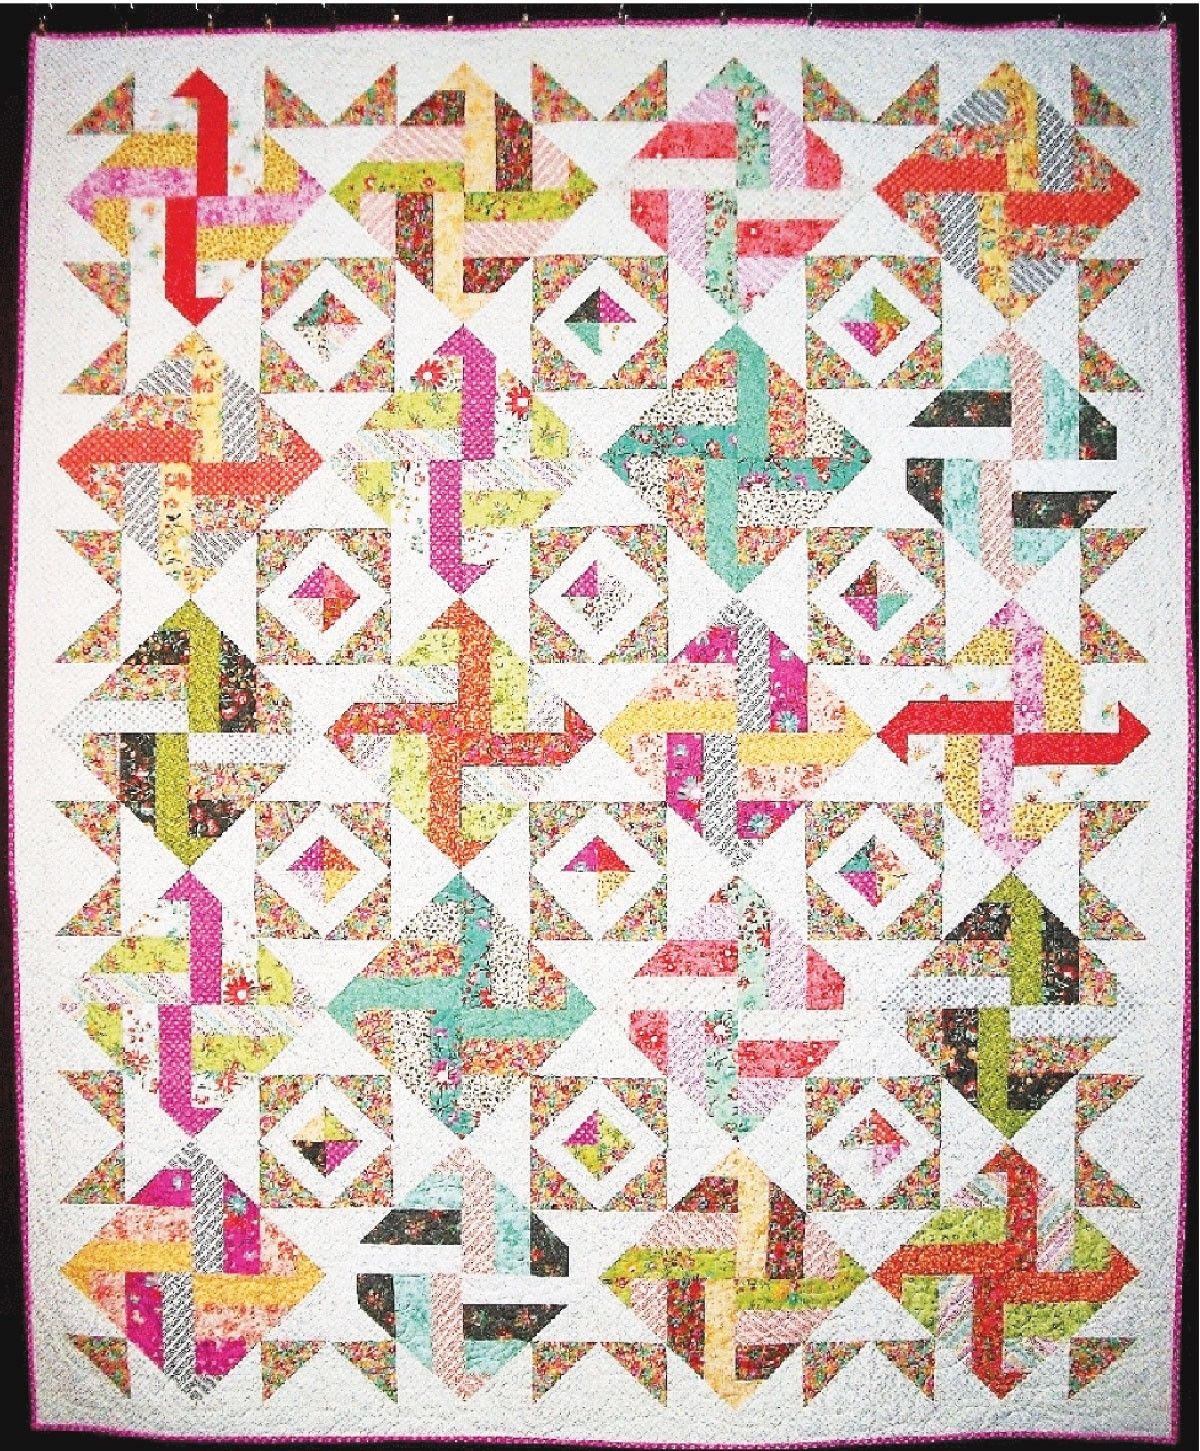 Surprise Party Quilt By Faust, Terri 64in x 79in Uses